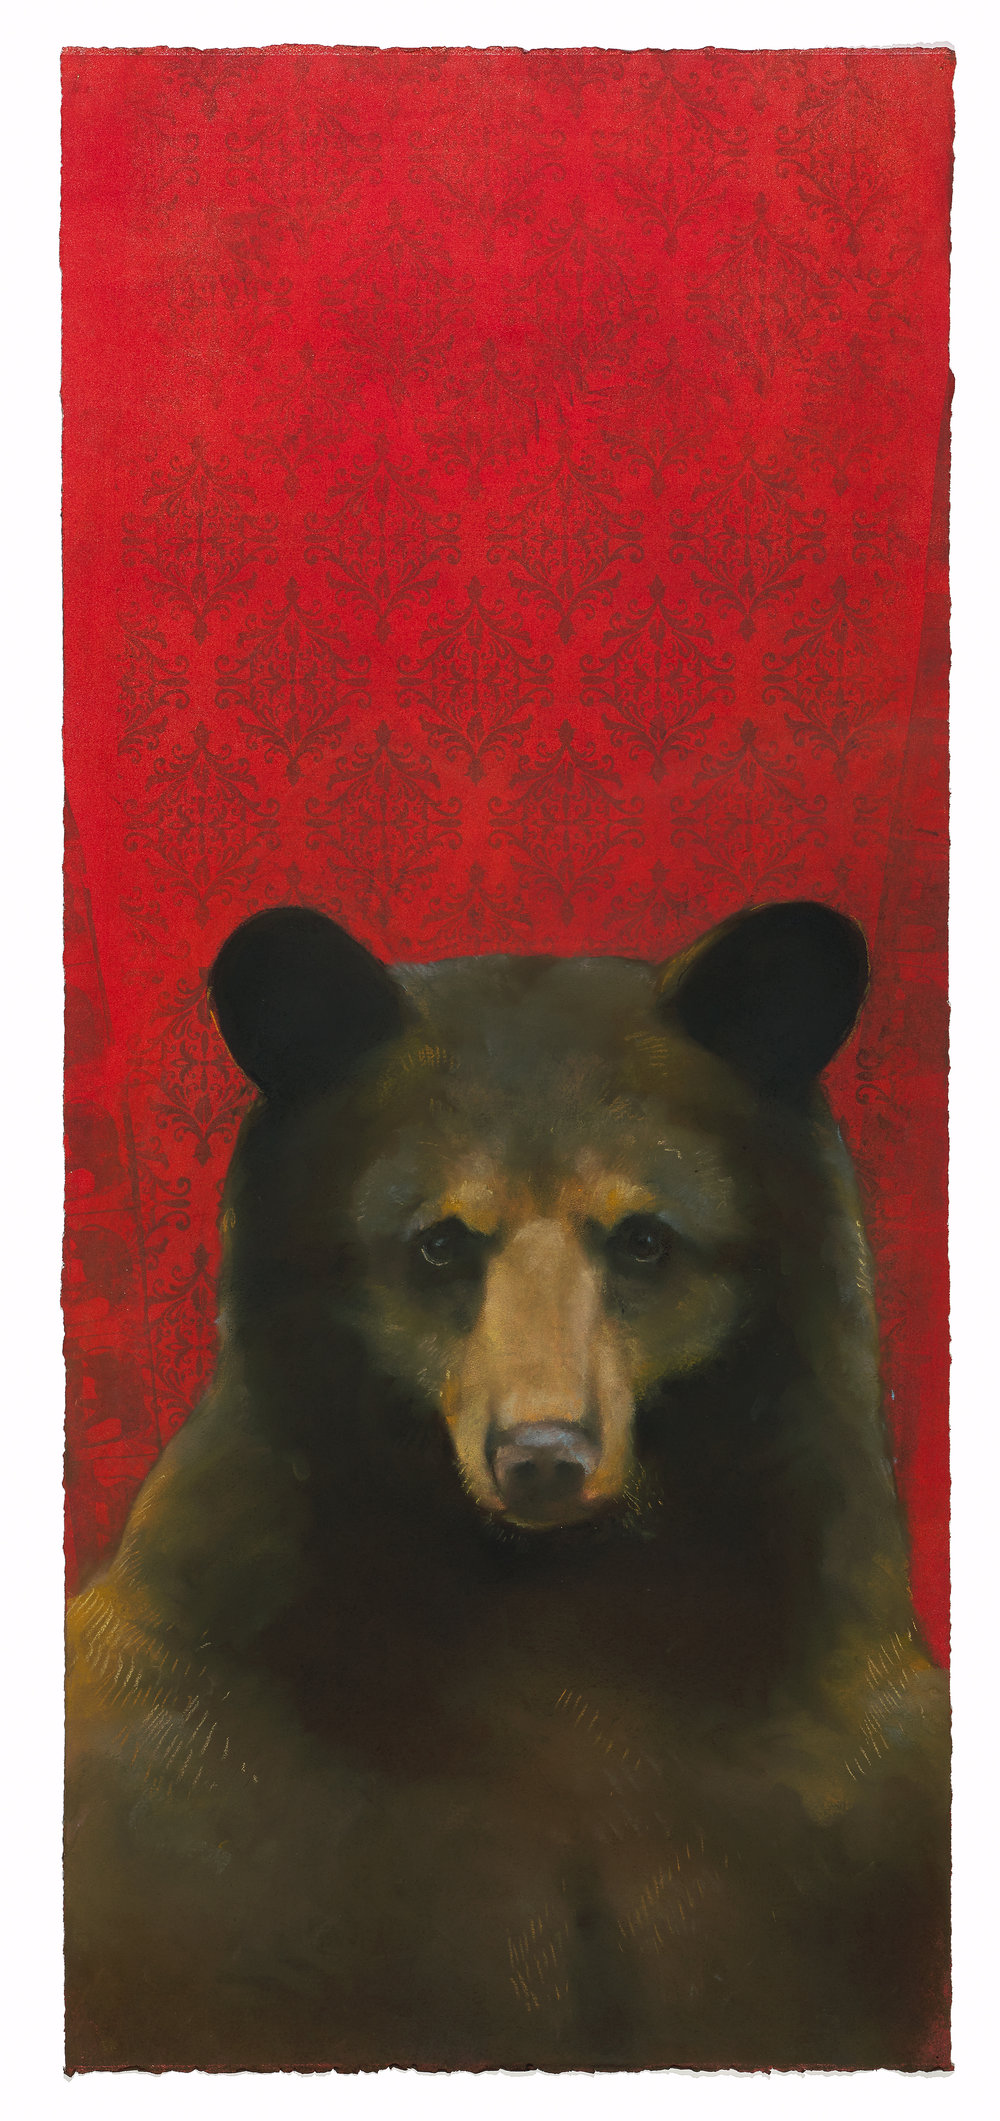 Brown Bear on Red Brocade